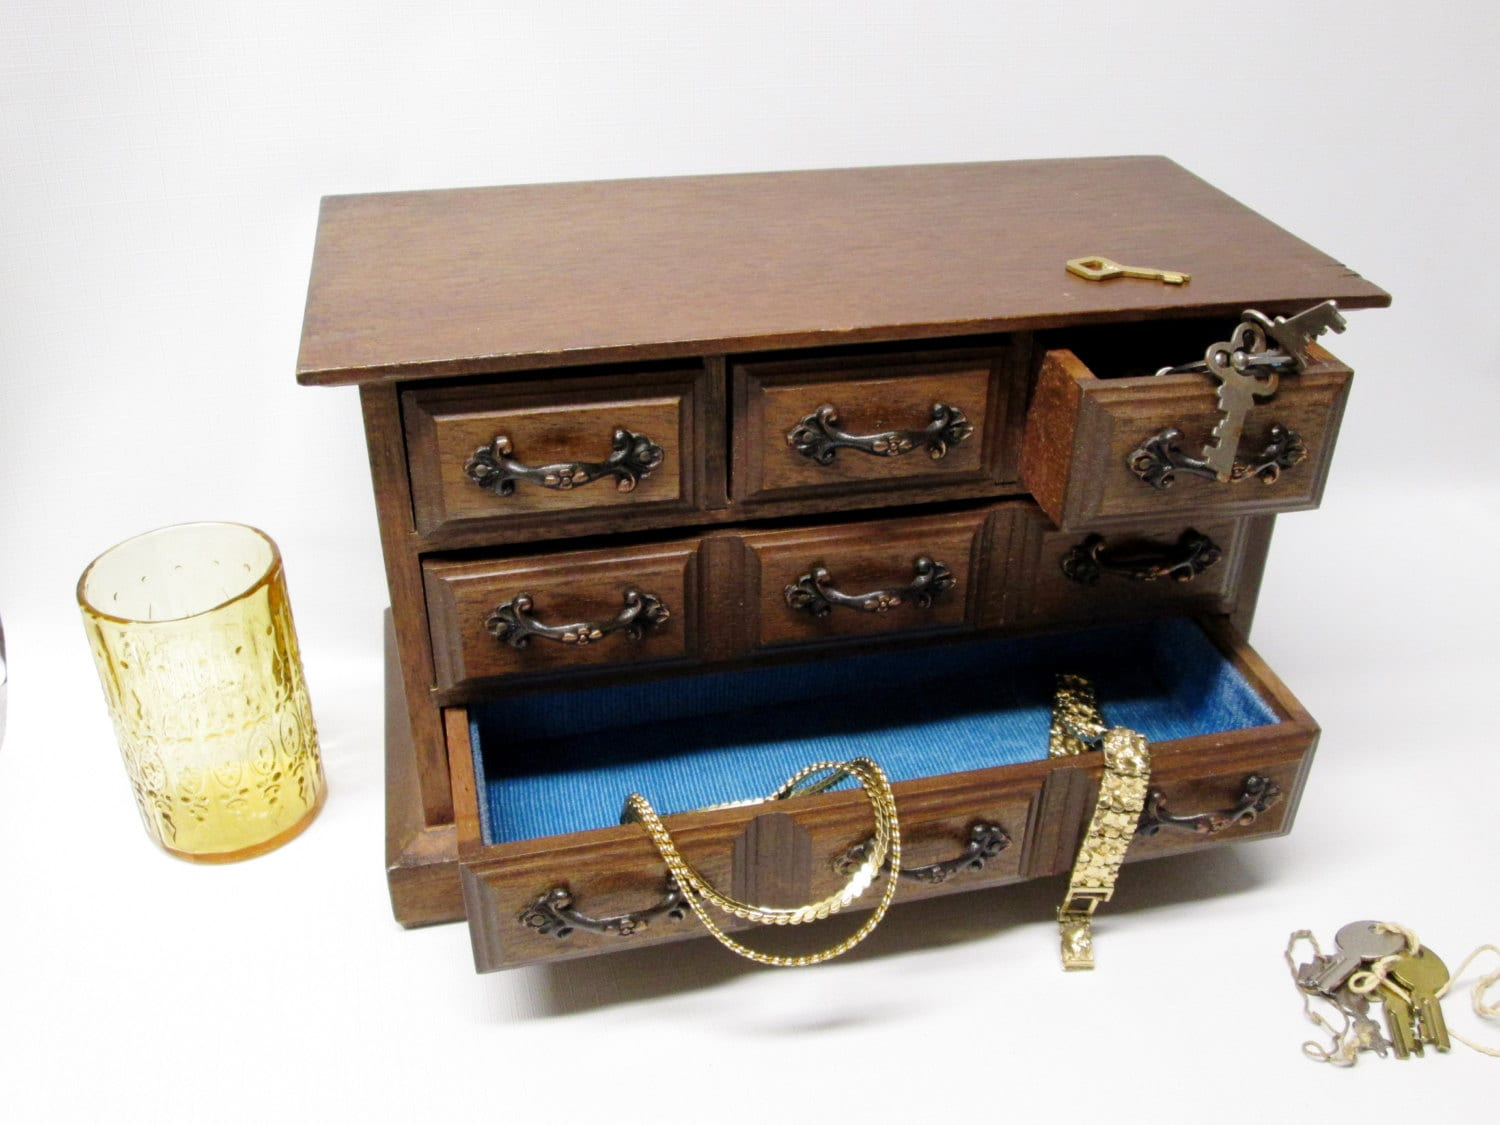 jewelry chest w 5 drawers light blue drawer lining. Black Bedroom Furniture Sets. Home Design Ideas